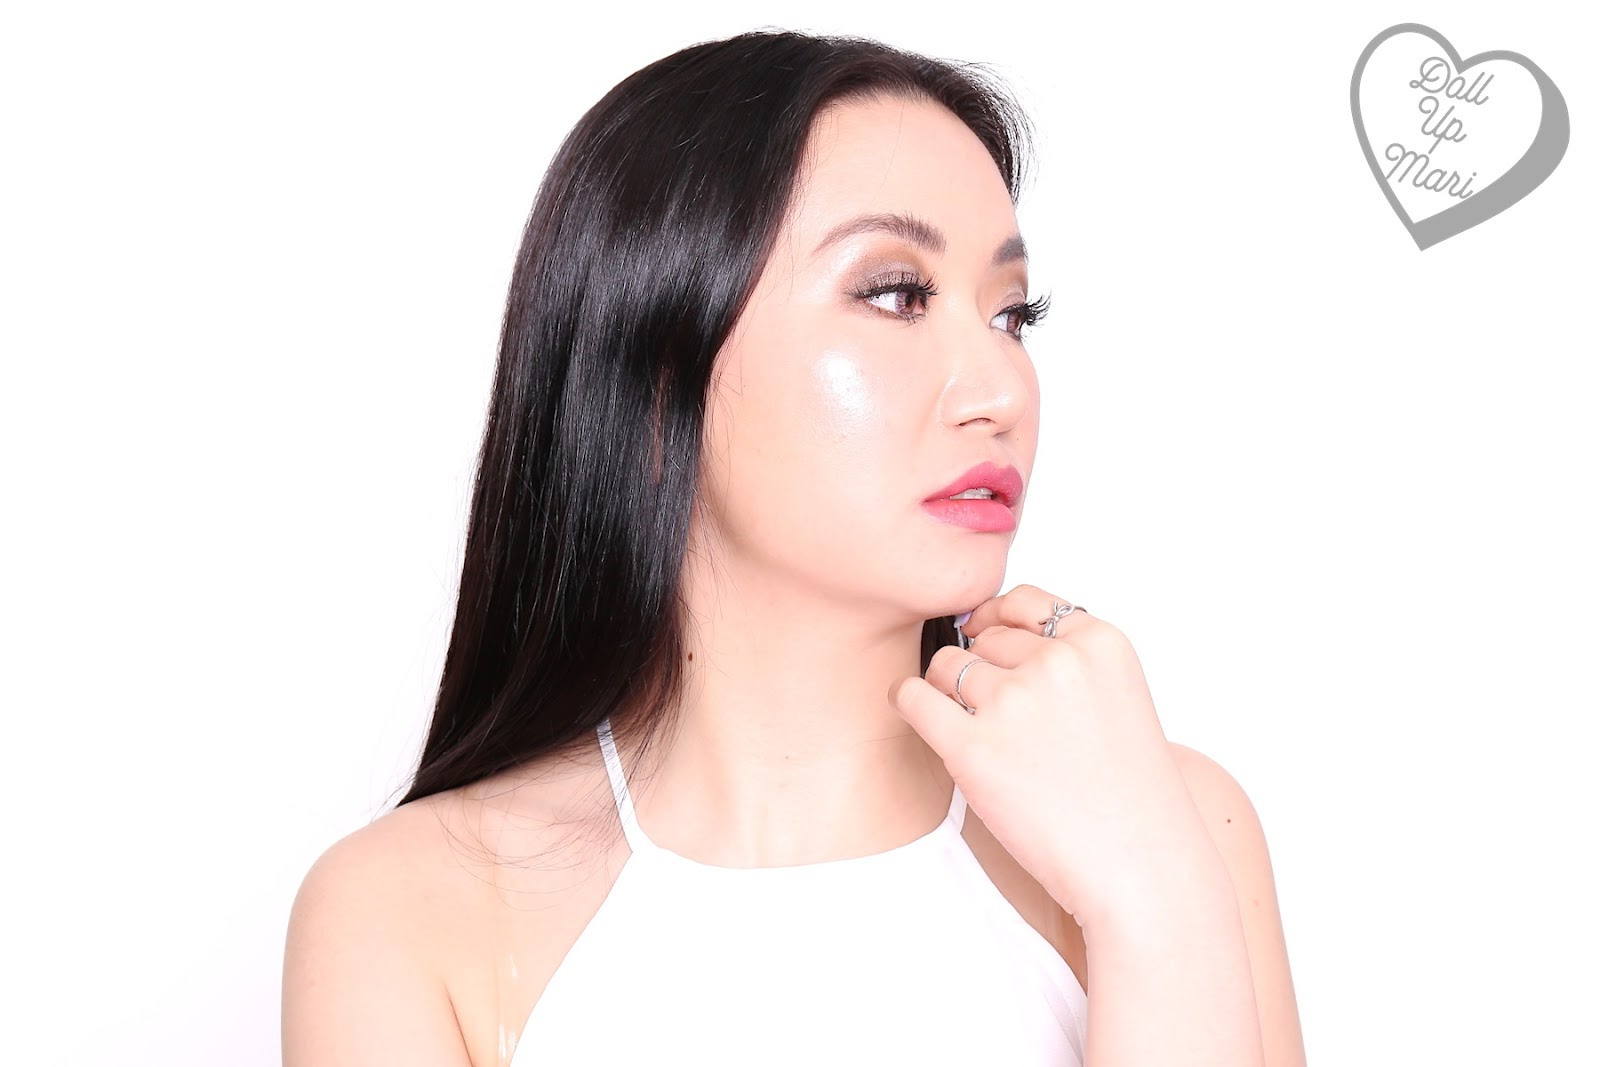 Wearing L'Oréal Paris Infallible 24HR Fresh Wear Liquid Foundation SPF25PA+++ in shade Golden Beige with full makeup